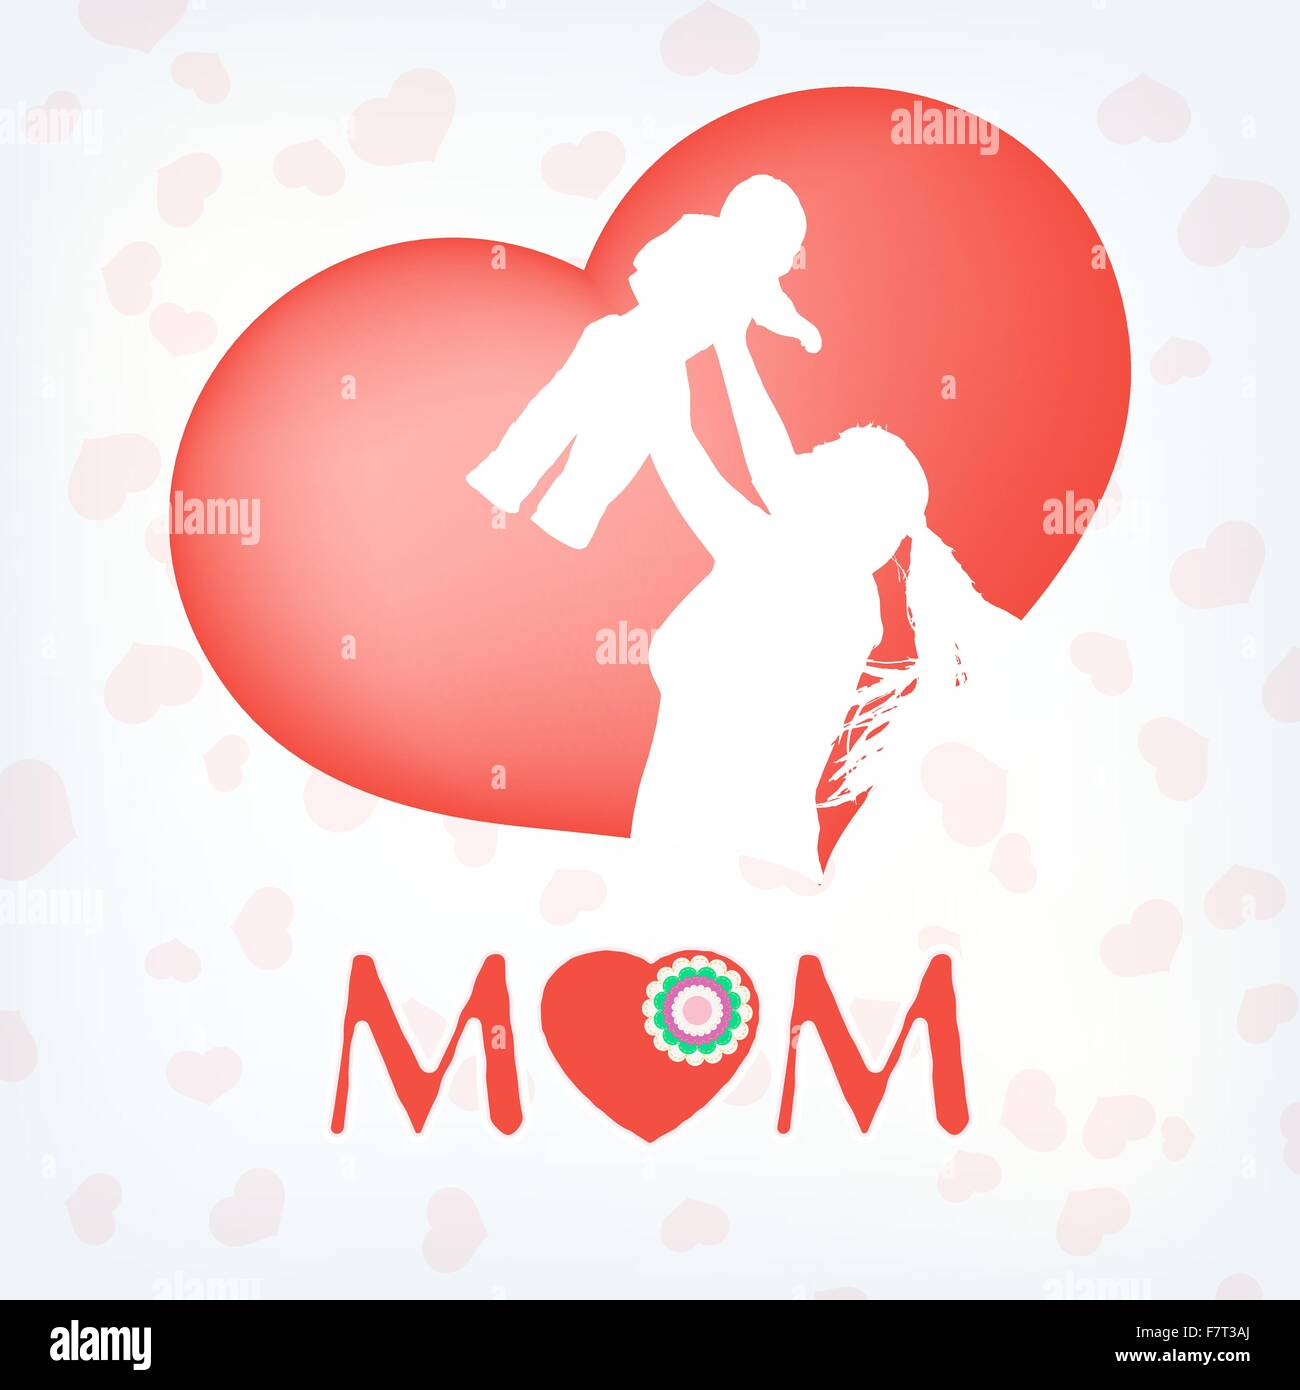 Silhouette of a mother and her child. EPS 10 - Stock Vector